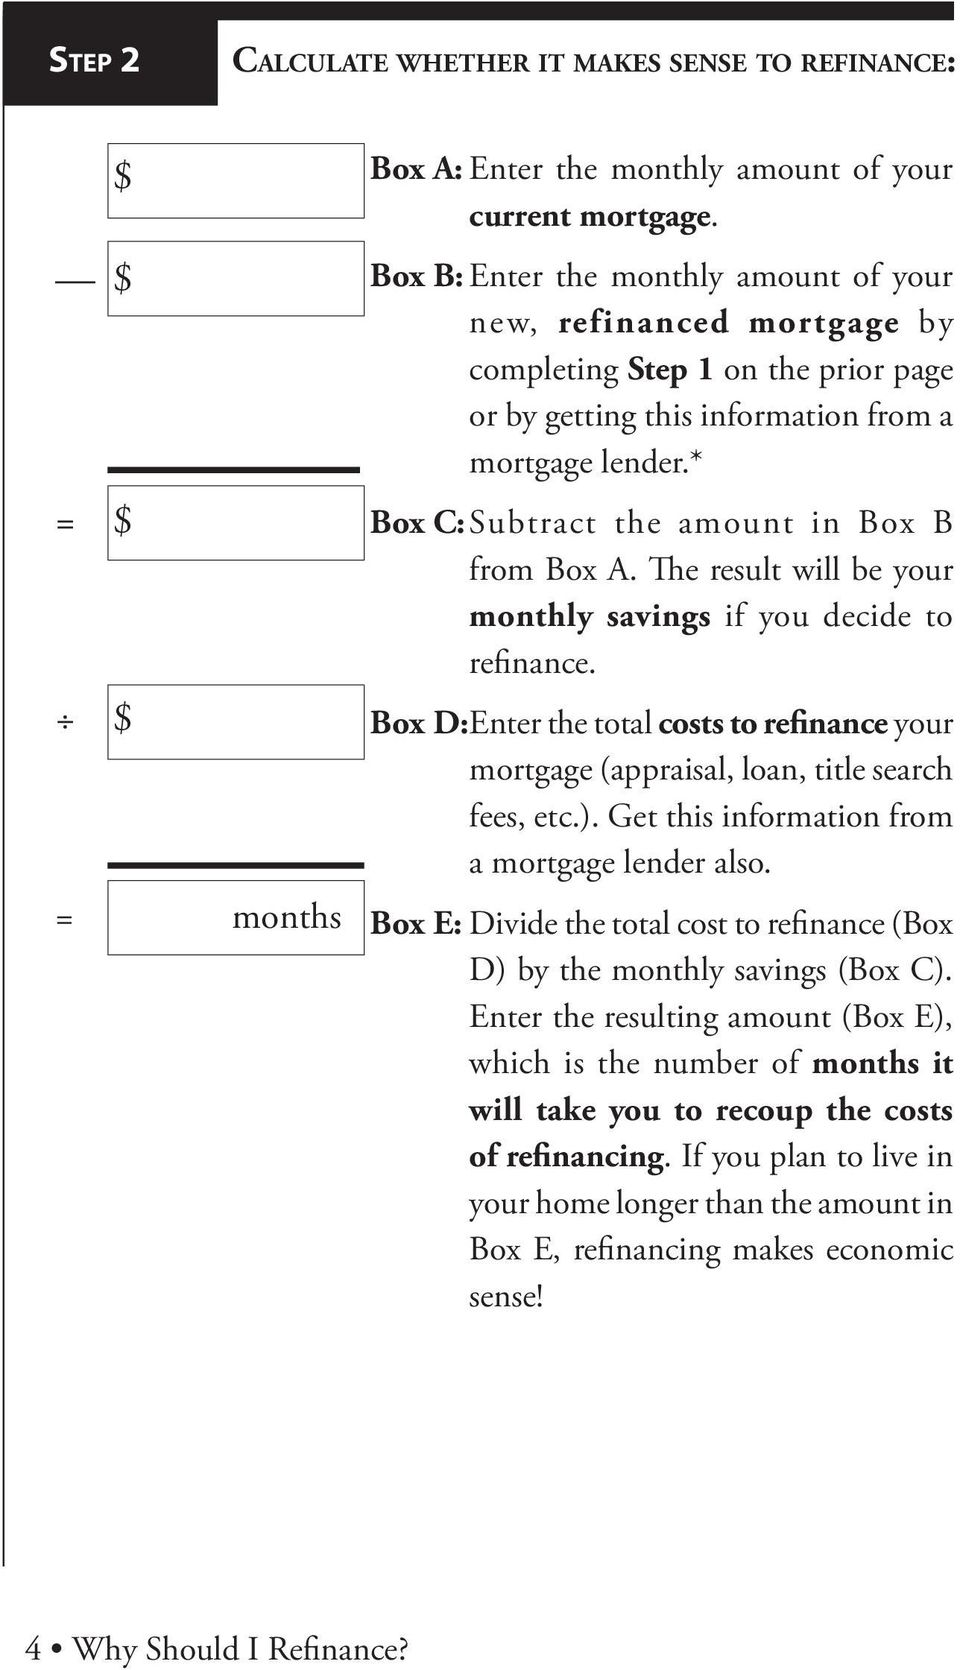 * Box C: Subtract the amount in Box B from Box A. The result will be your monthly savings if you decide to refinance.